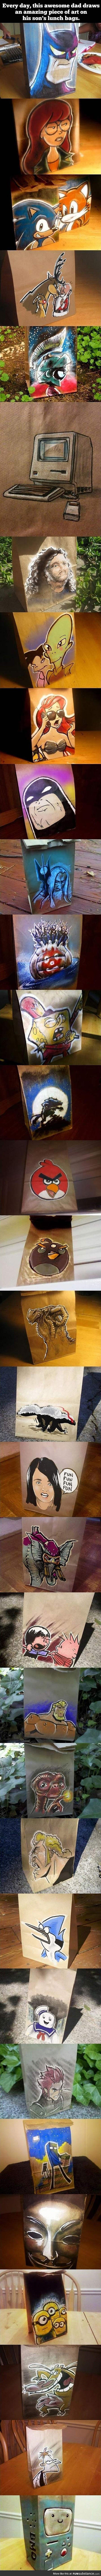 This awesome dad draws on his kids' lunch bags